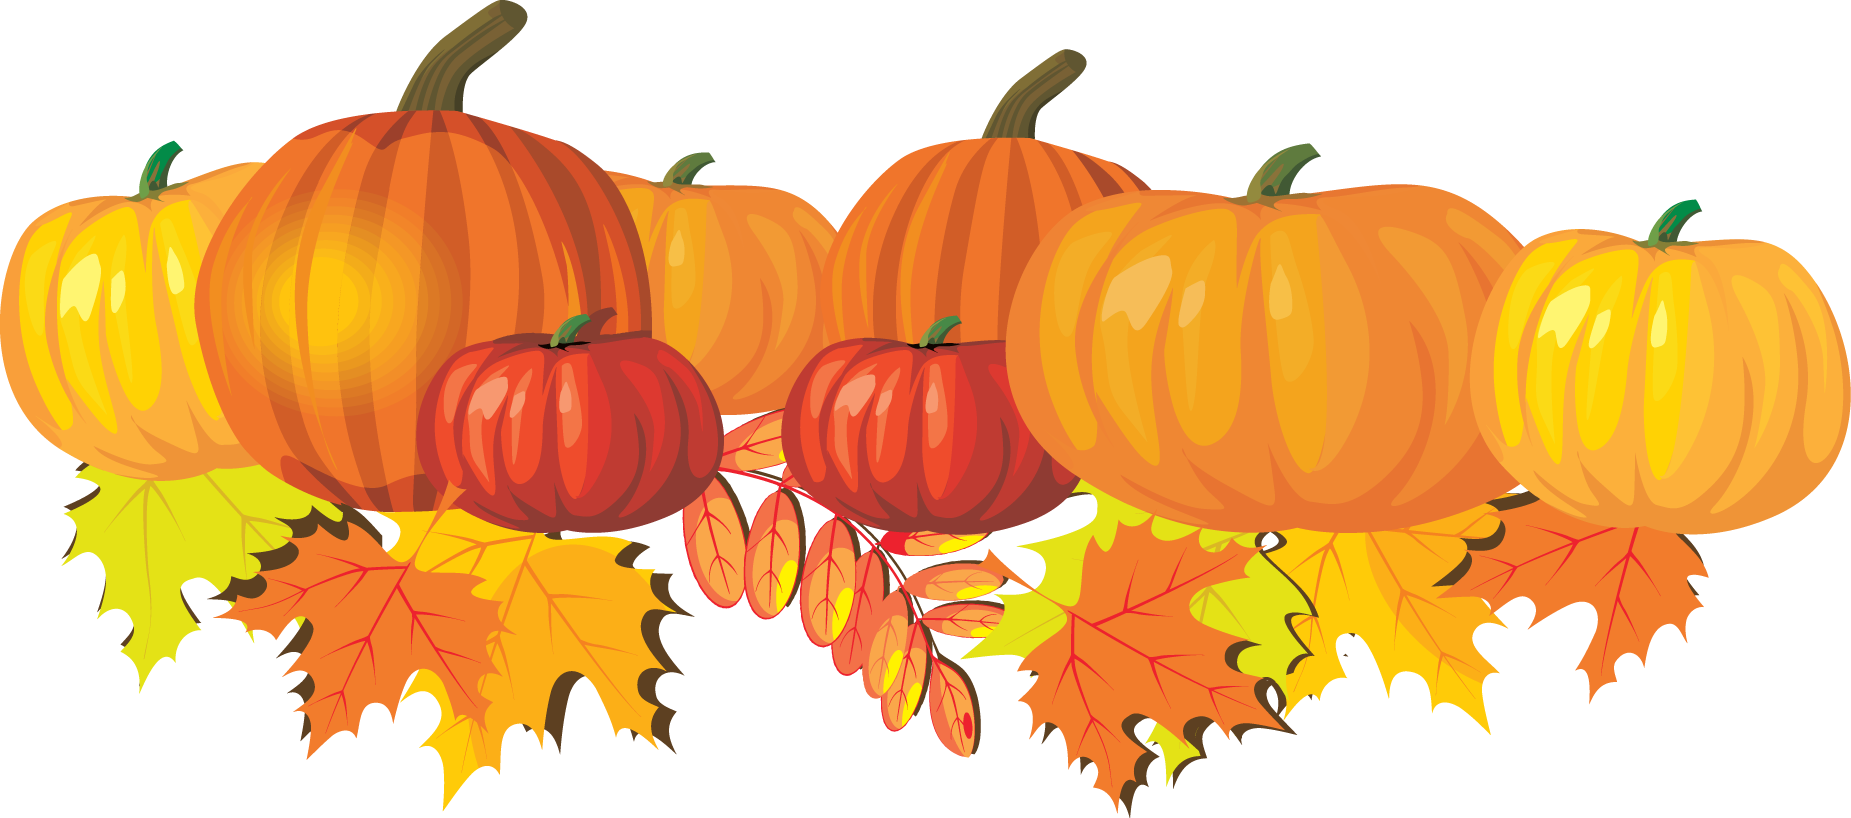 october clipart transparent